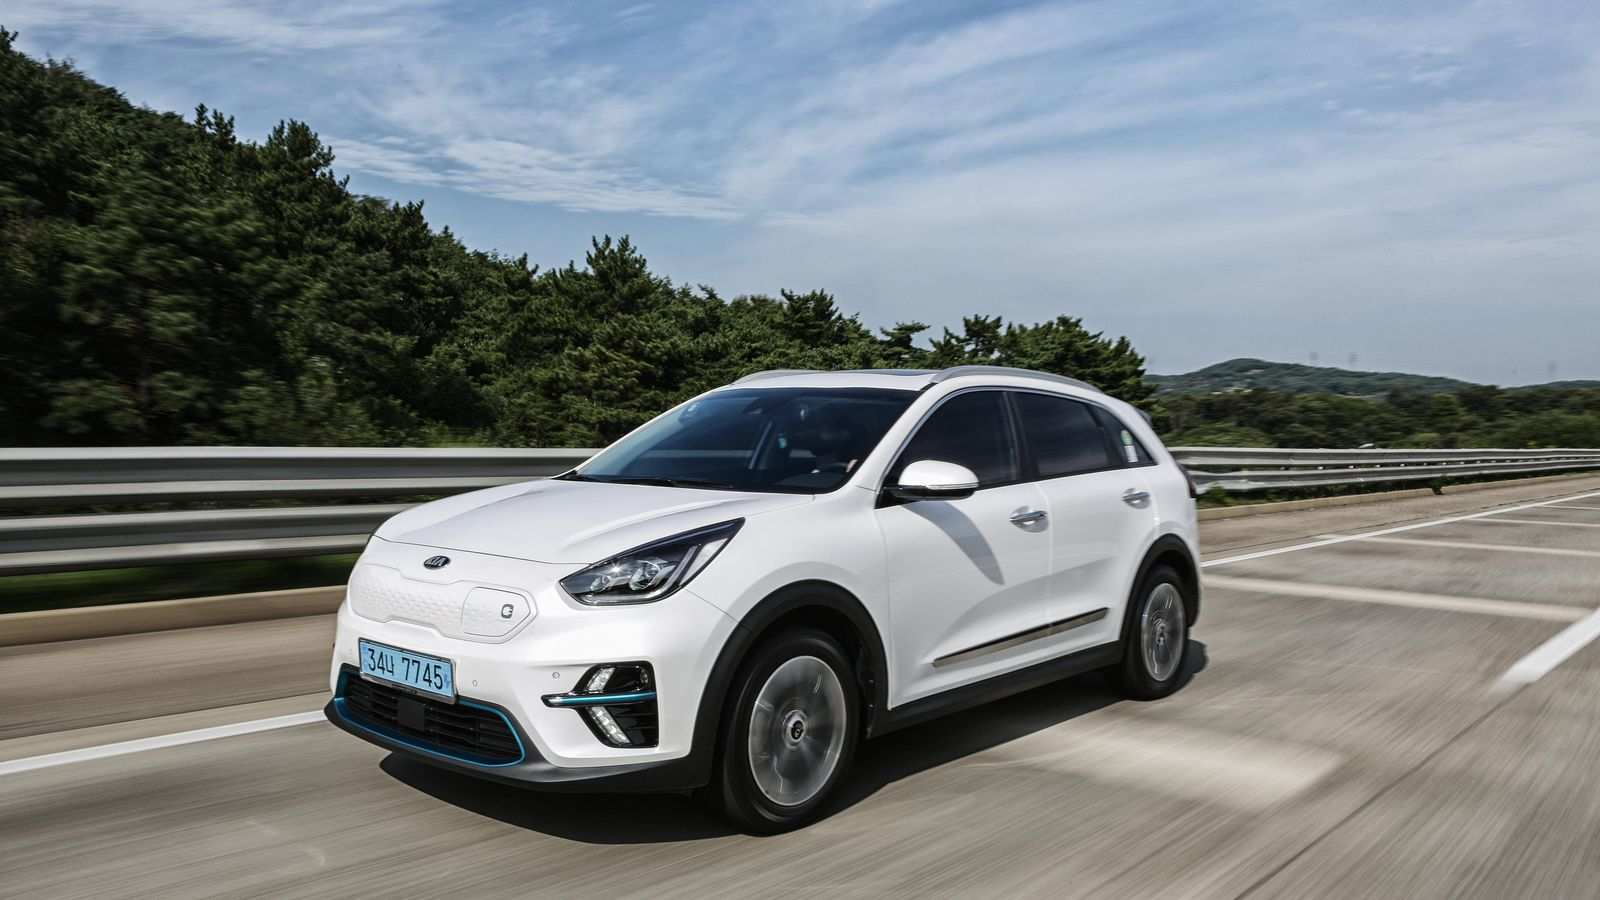 66 The 2019 Kia Niro Ev Redesign for 2019 Kia Niro Ev